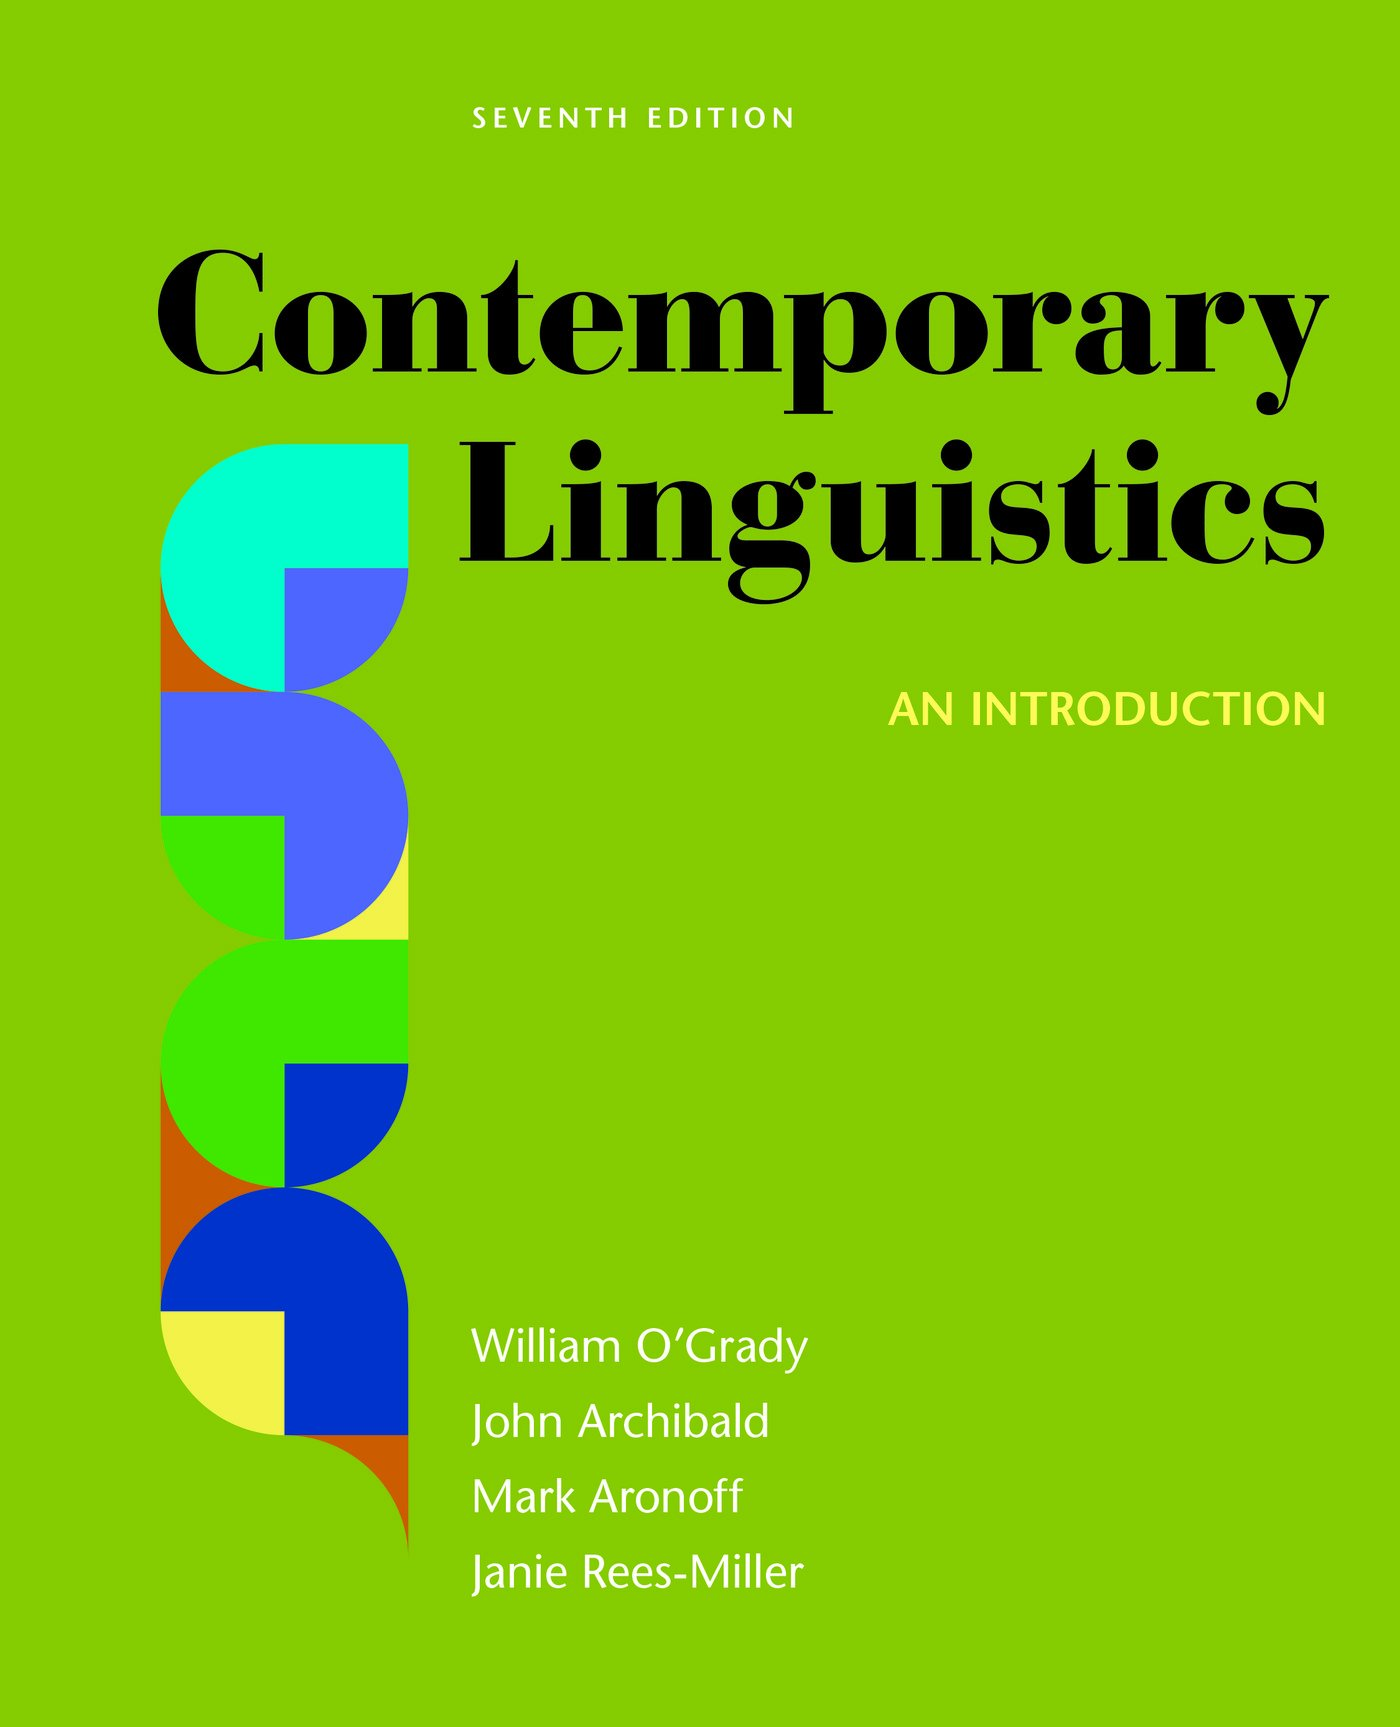 Contemporary Linguistics: An Introduction by Bedford/St. Martin's